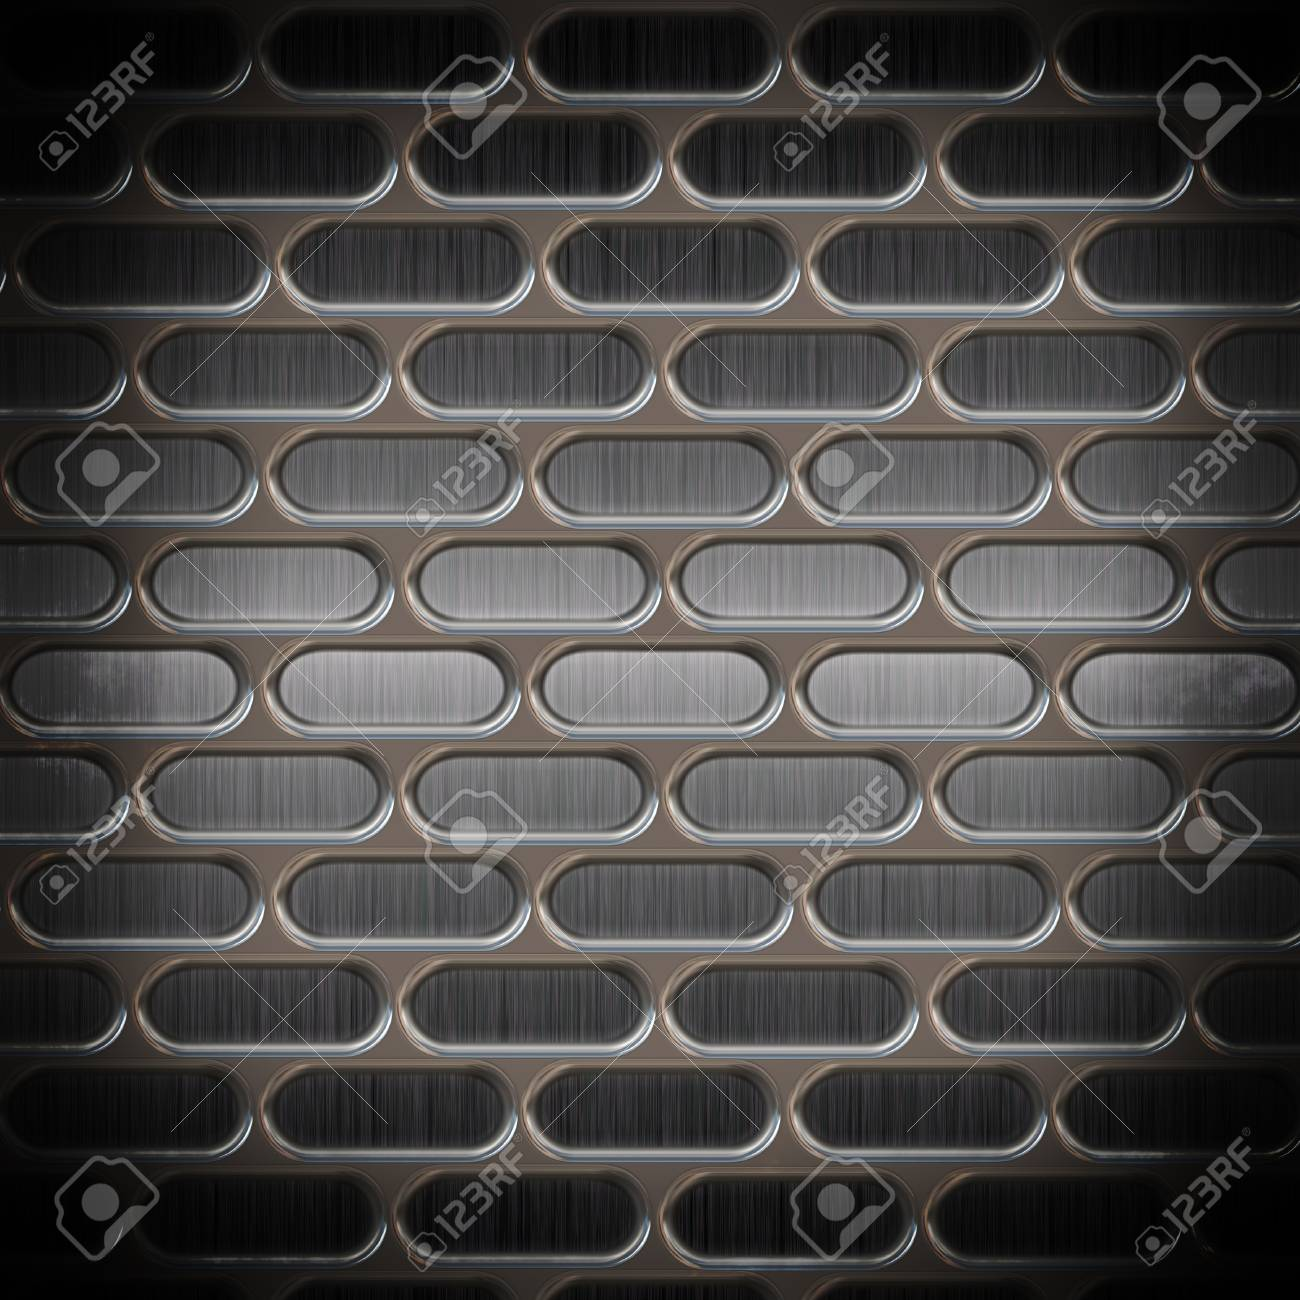 Metal texture with holes Stock Photo - 18517678